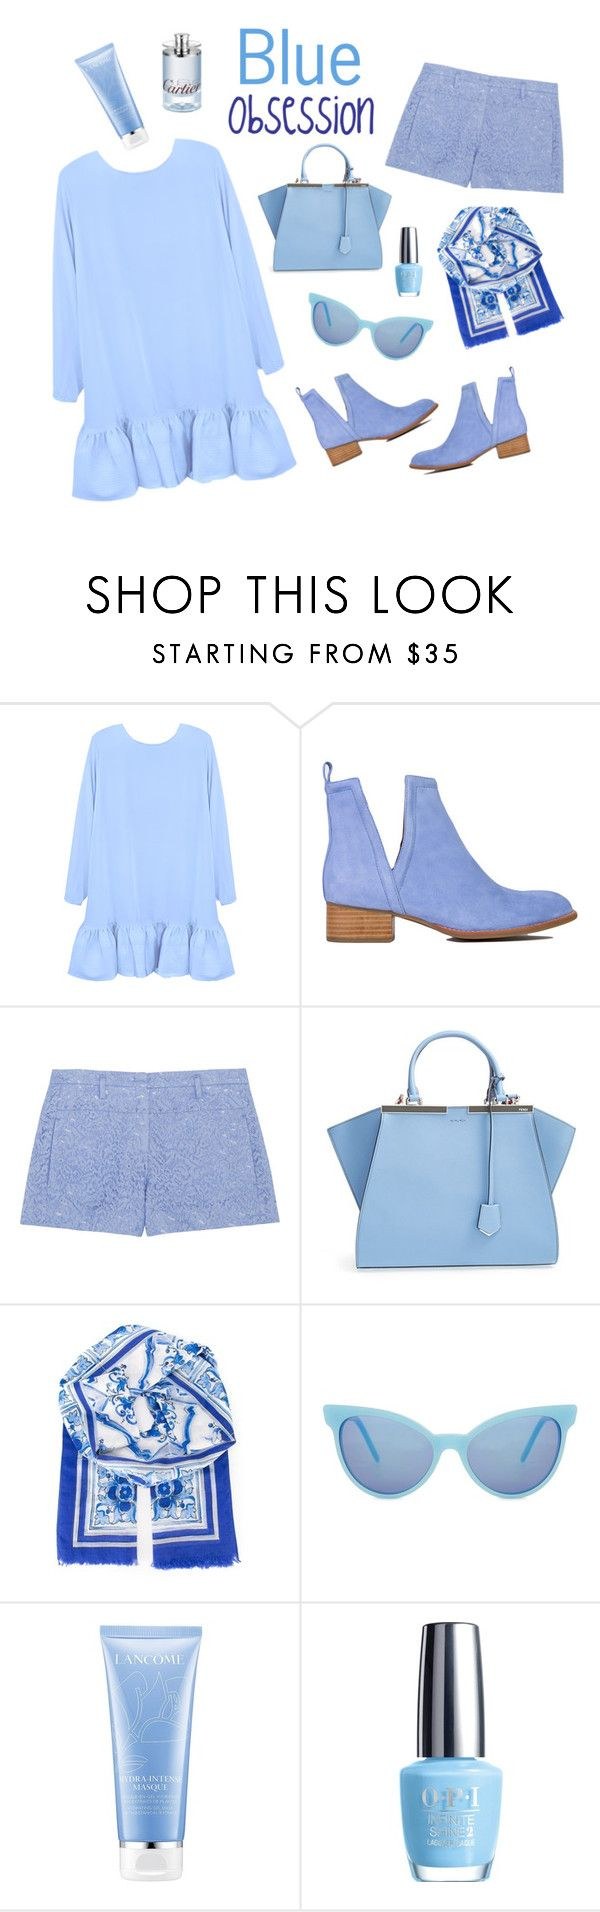 """""""Blue Obsession"""" by mara-petcana ❤ liked on Polyvore featuring Cynthia Rowley, Jeffrey Campbell, N°21, Fendi, Dolce&Gabbana, Wildfox, Lancôme and OPI"""